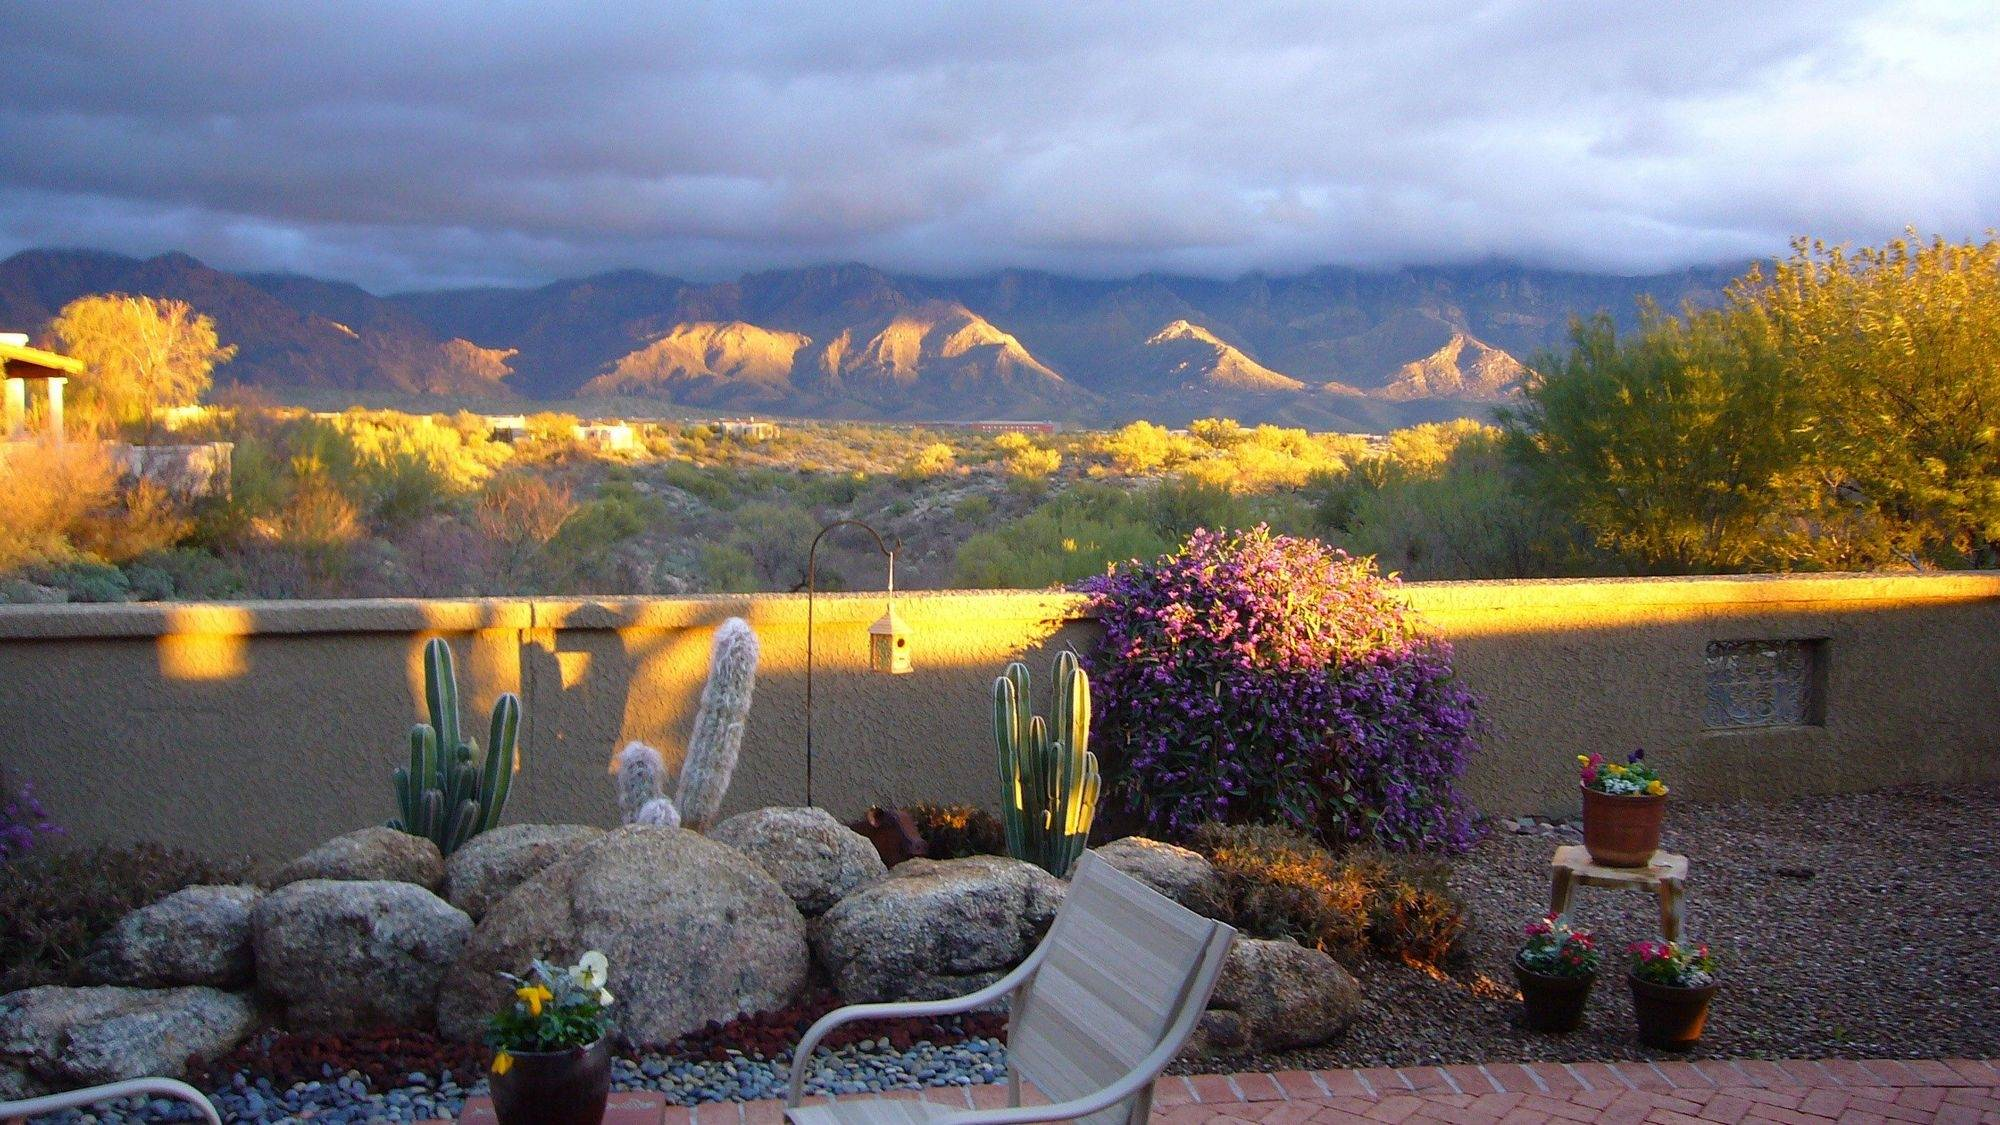 The evening light on a friend's patio and the desert countryside in Tucson Arizona.